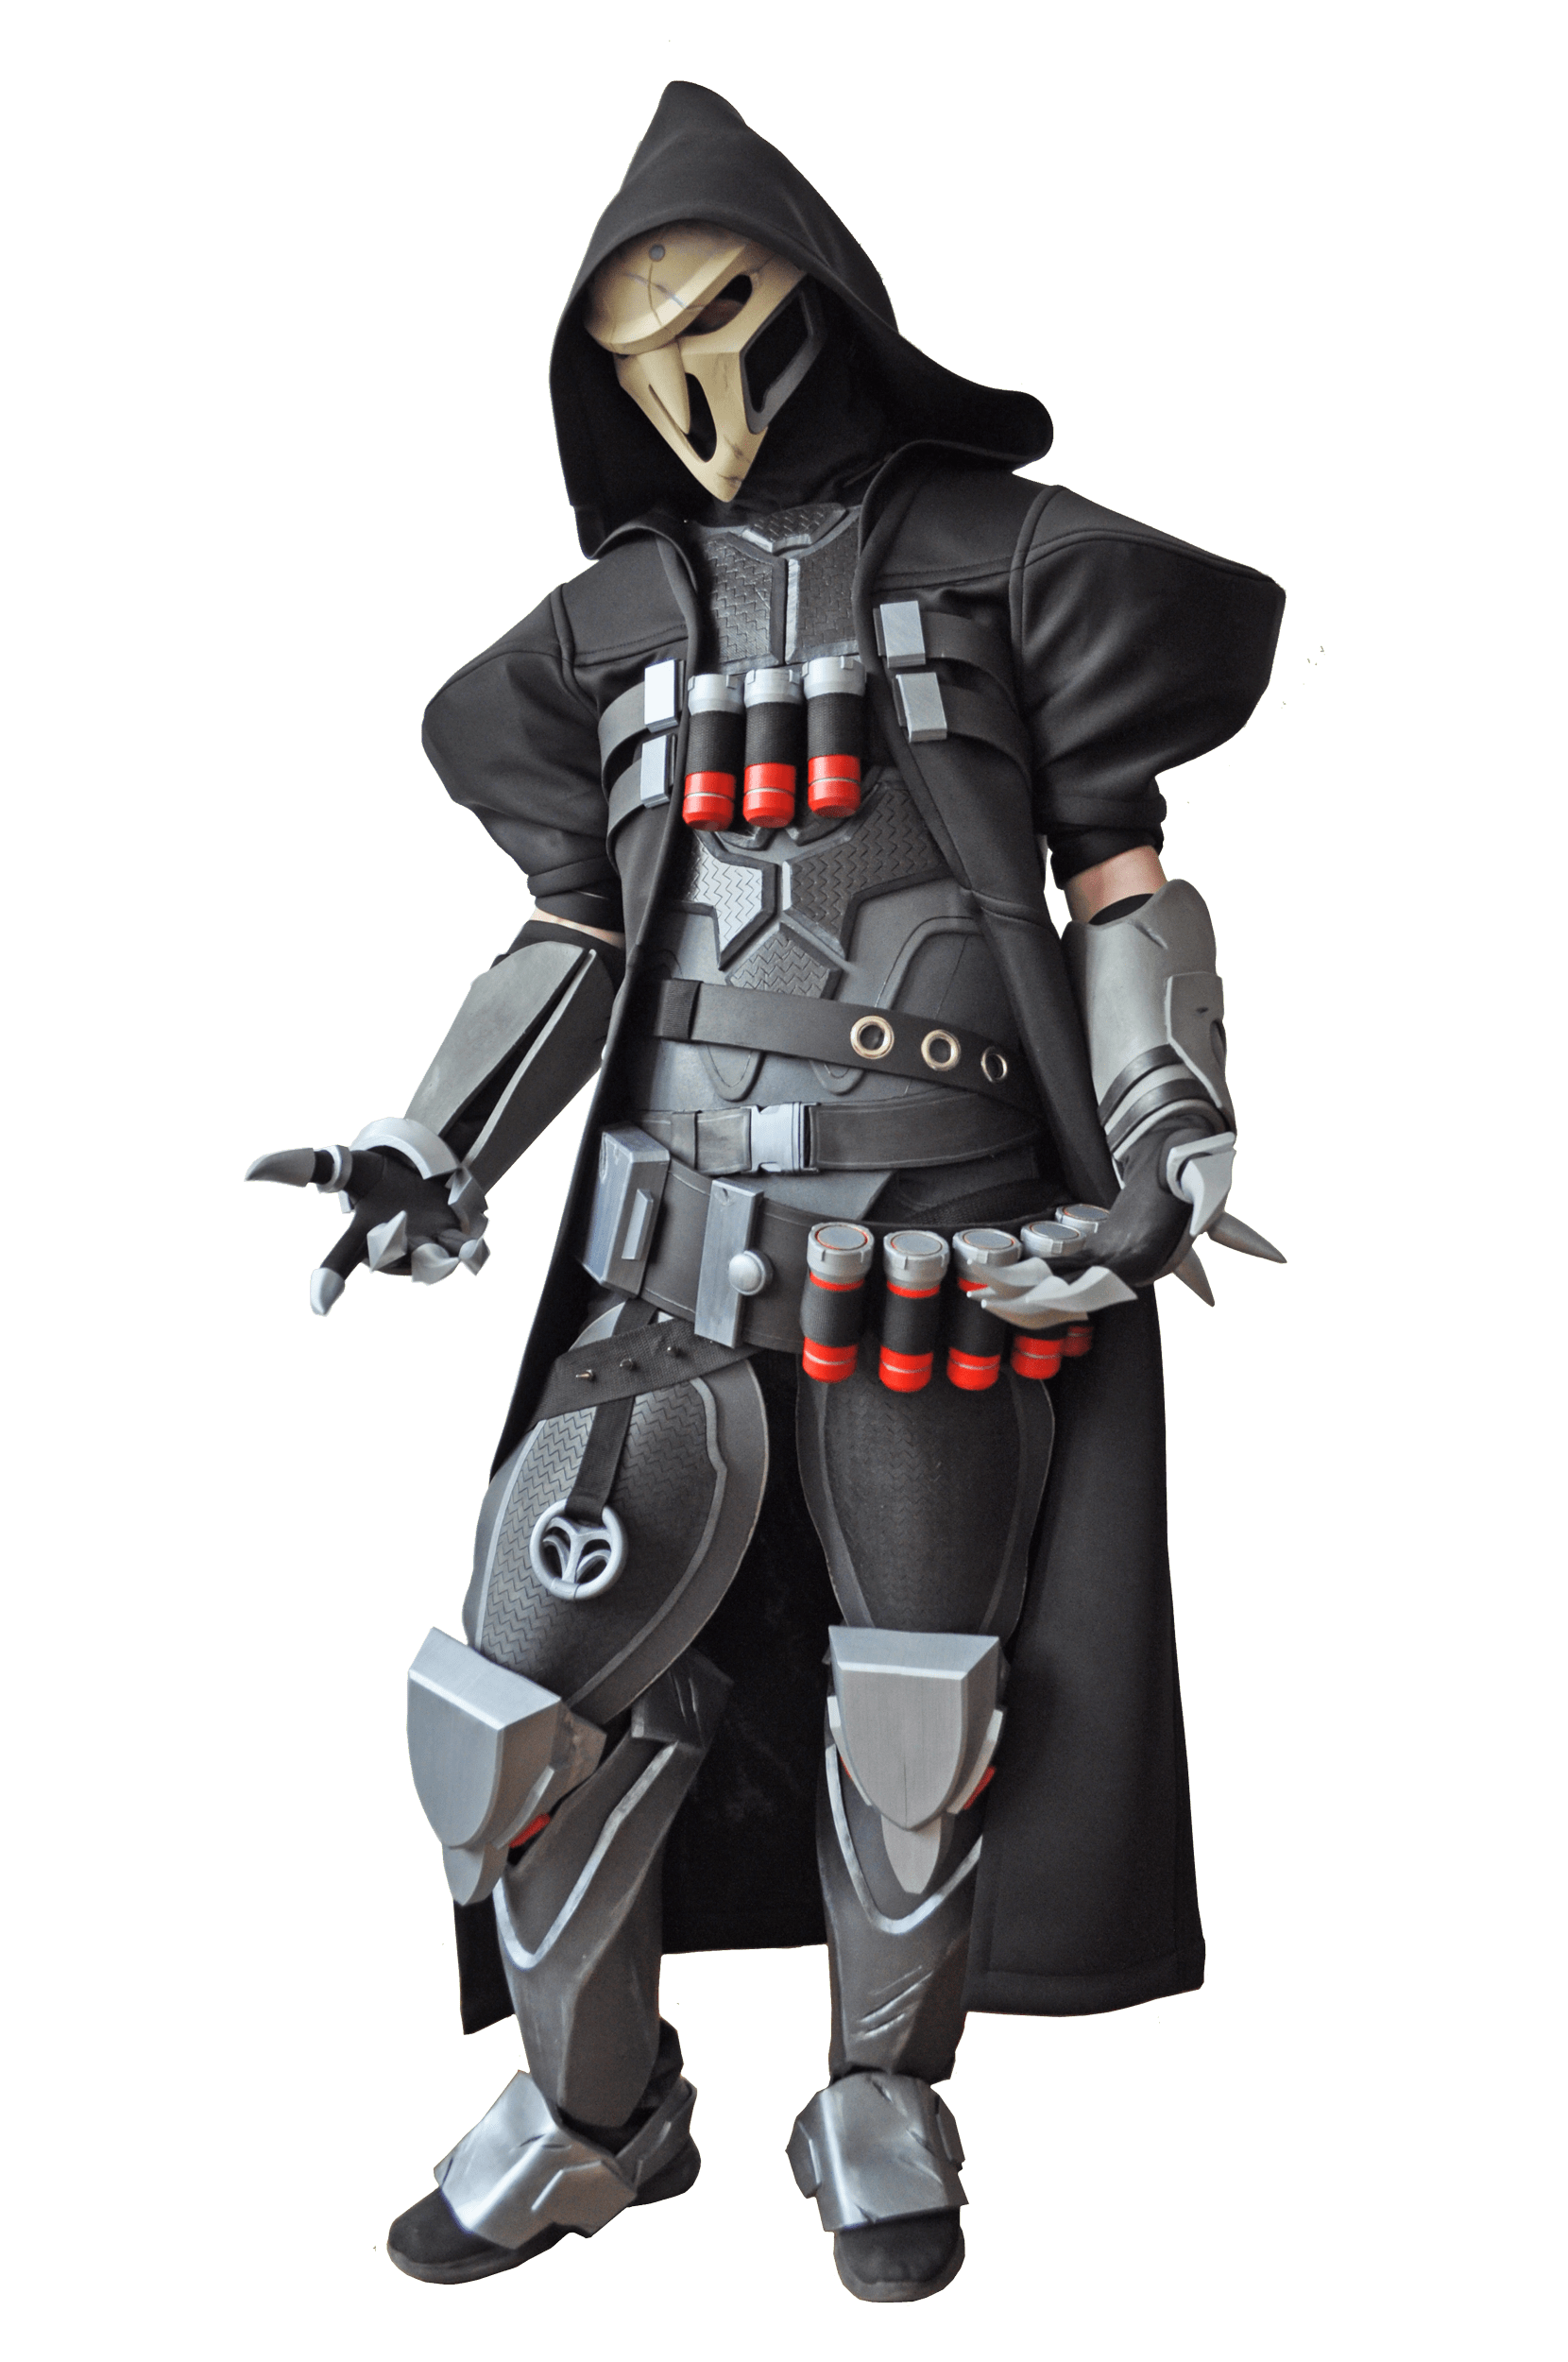 Reaper overwatch png. Set replica costume for